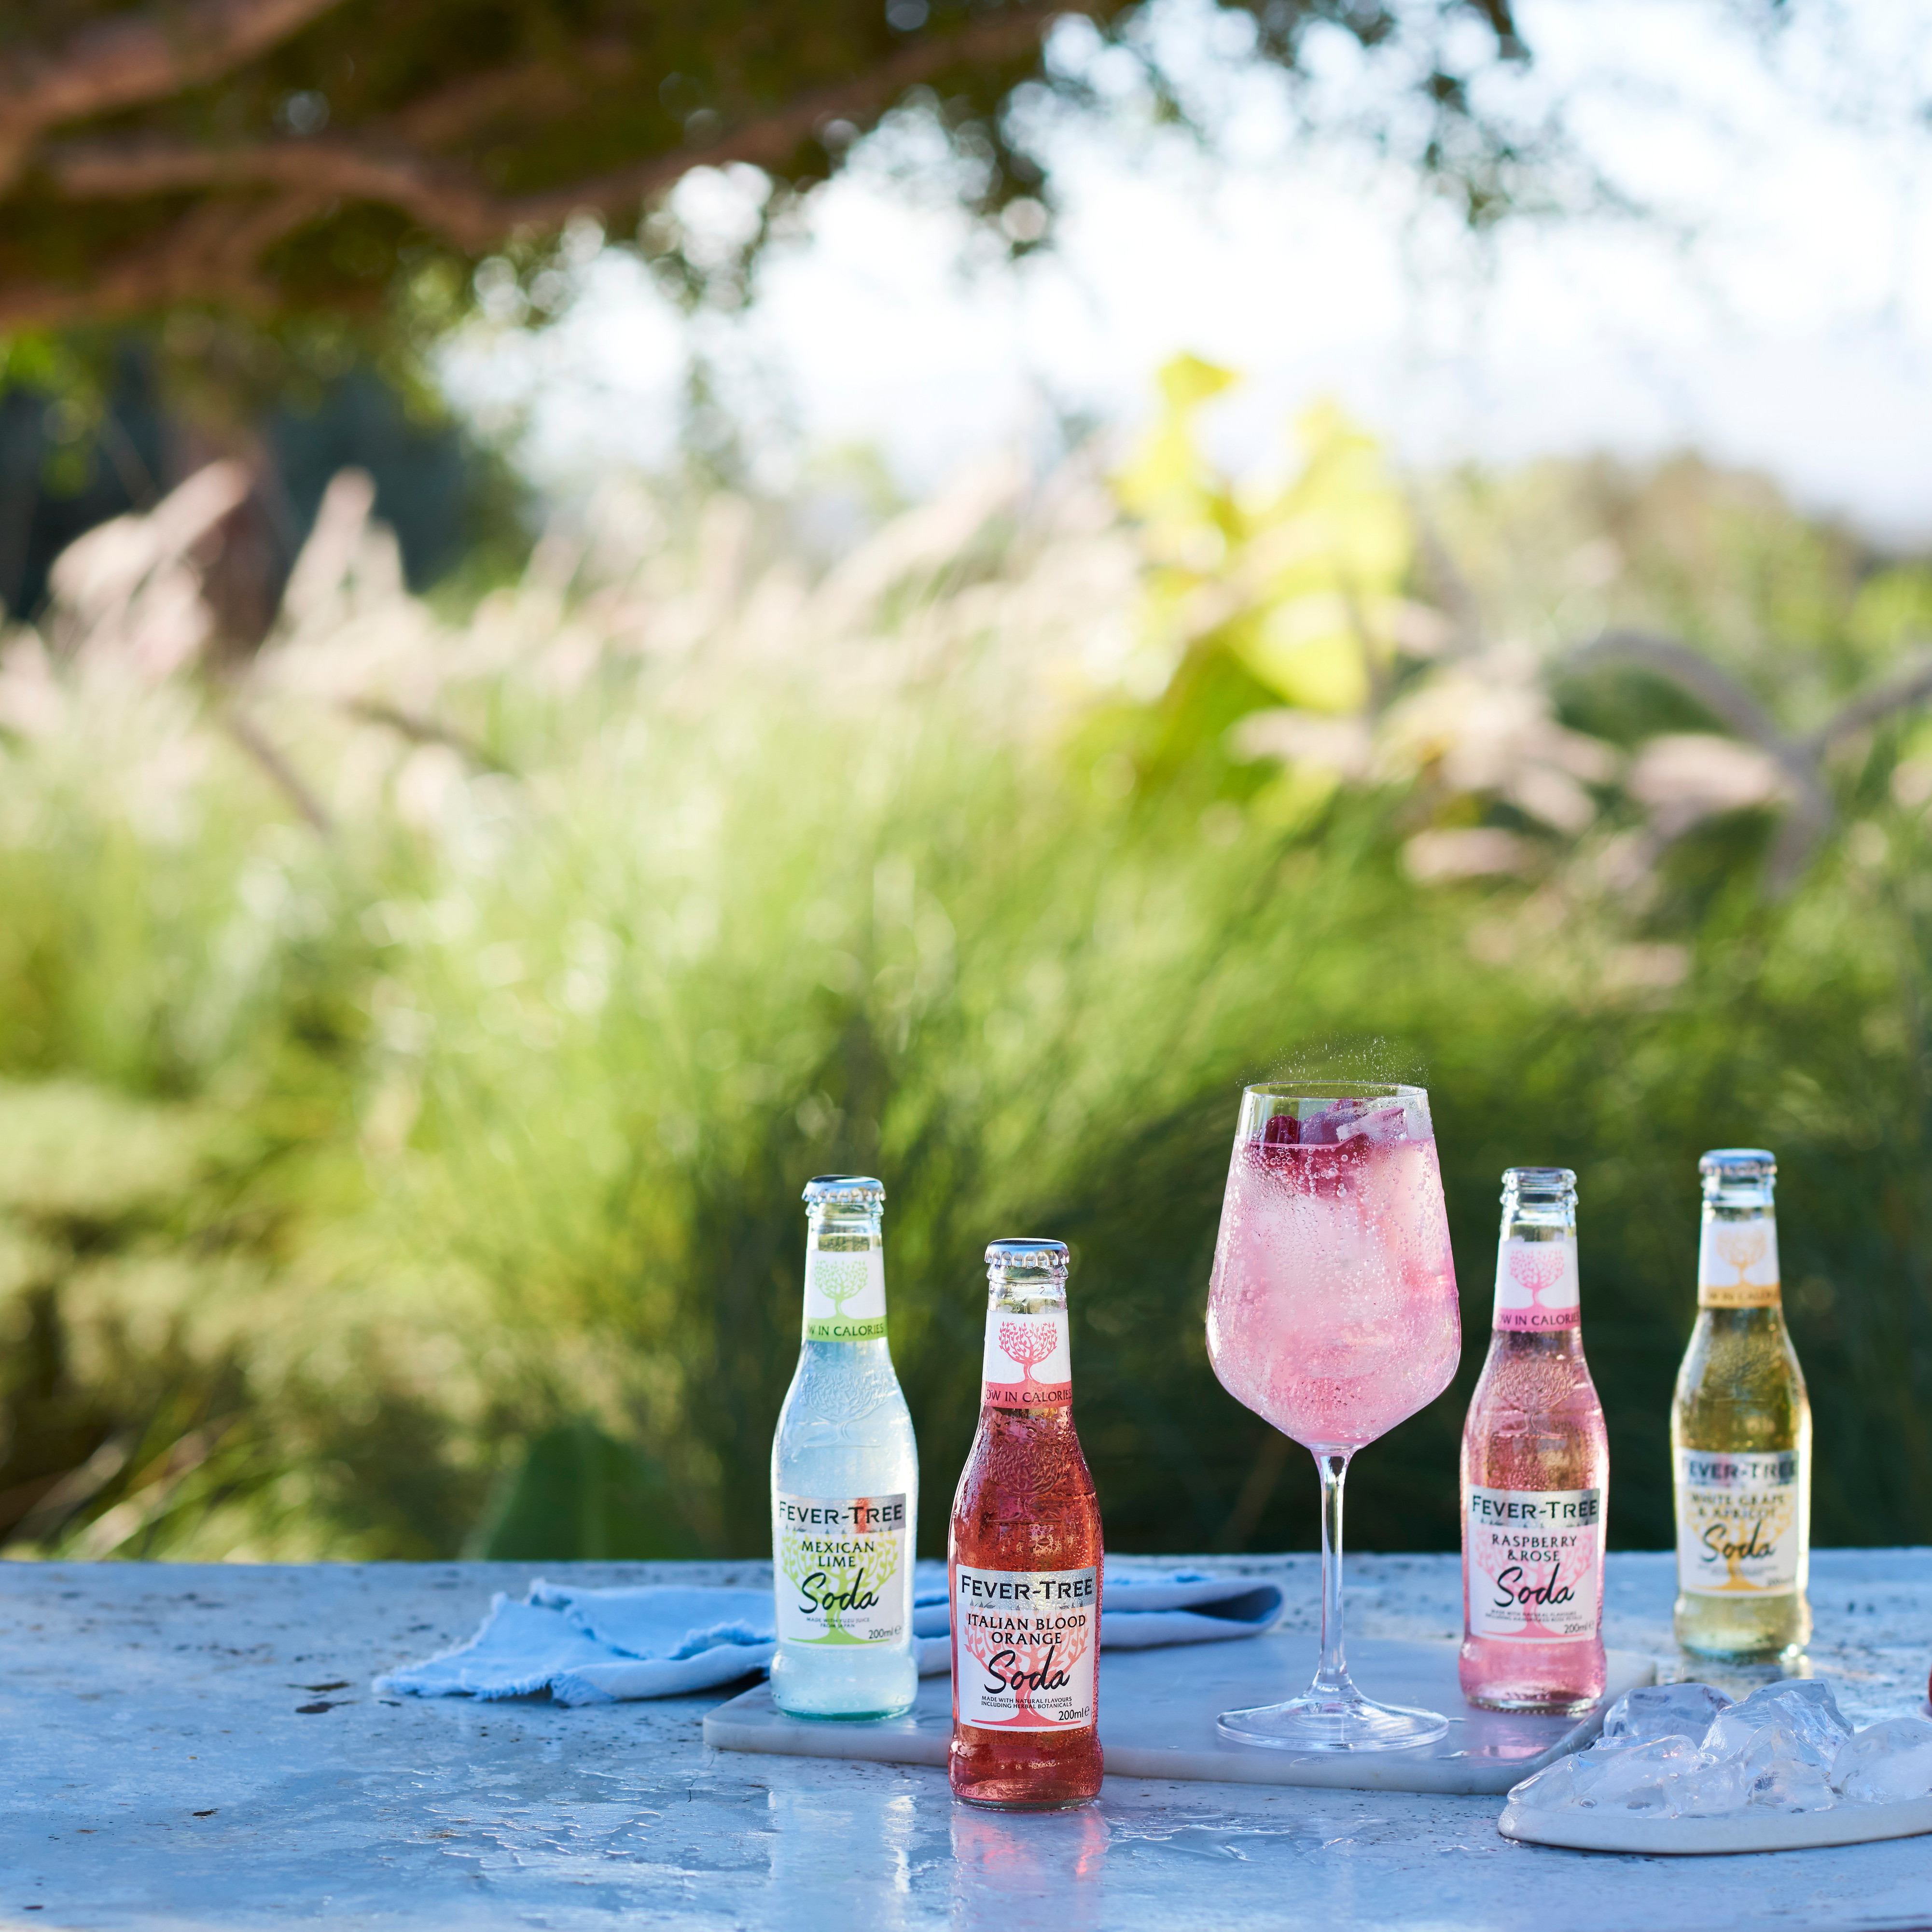 Summer Spritz with the Fever-Tree Soda Collection